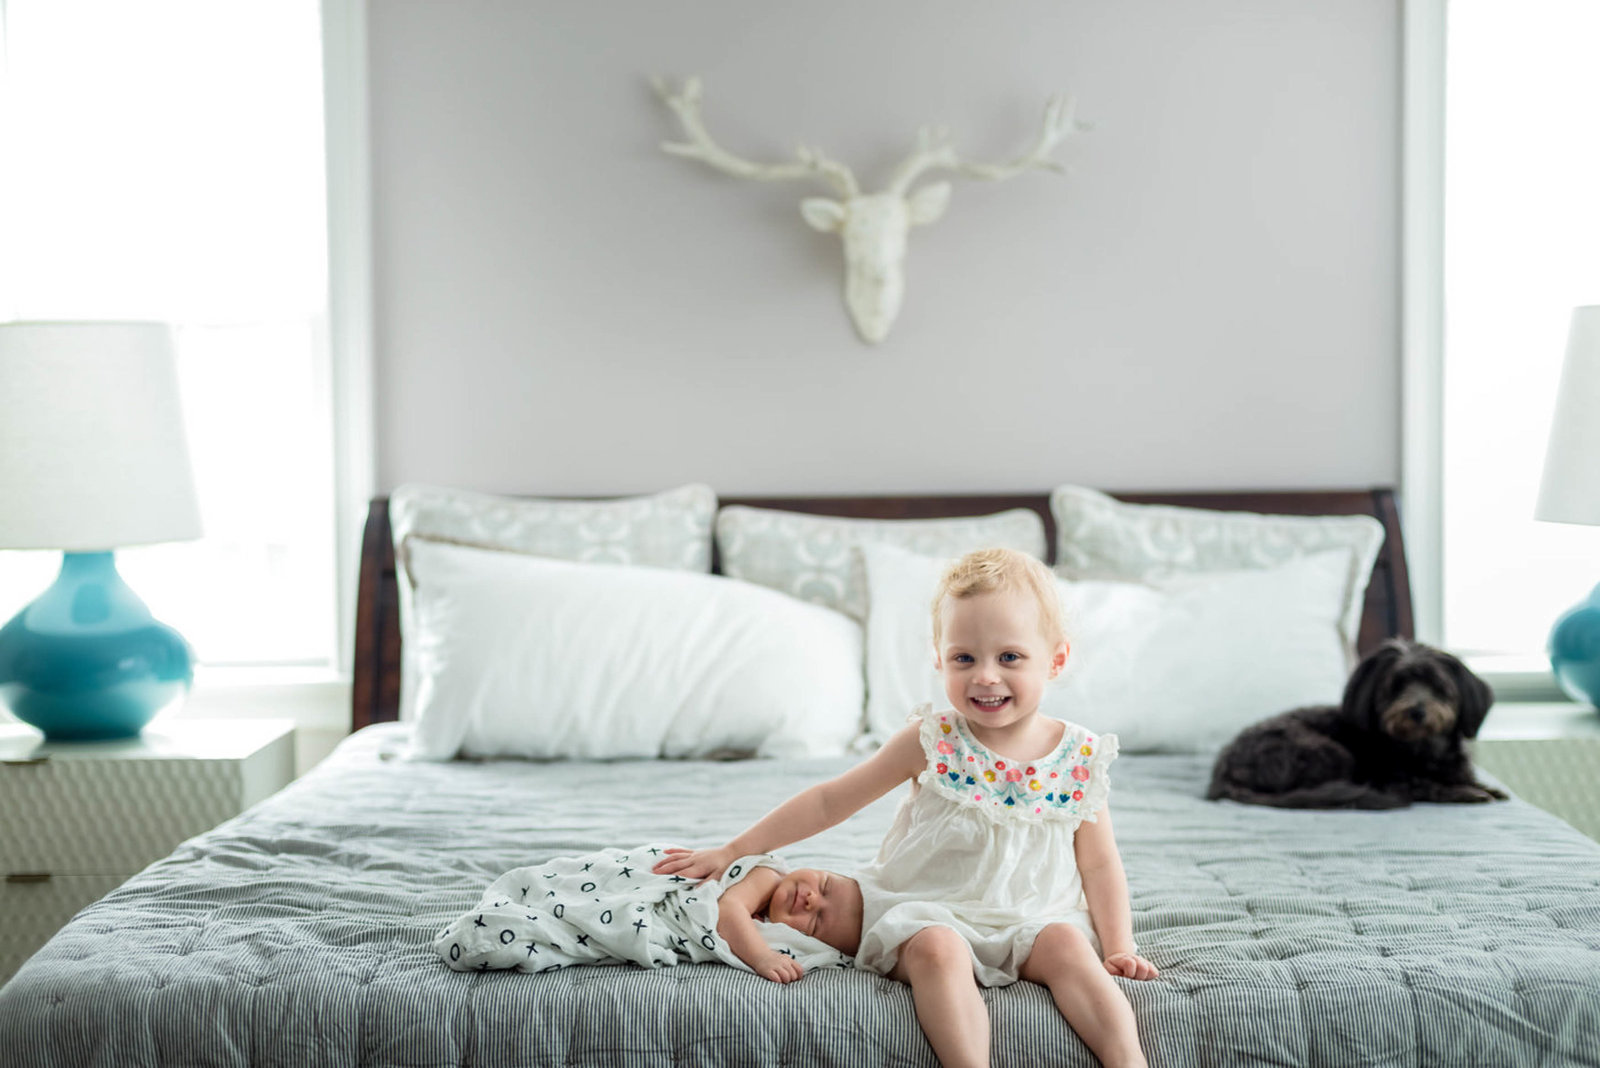 Boston-Newborn-Photographer-Lifestyle-Documentary-Home-Styled-Session-174